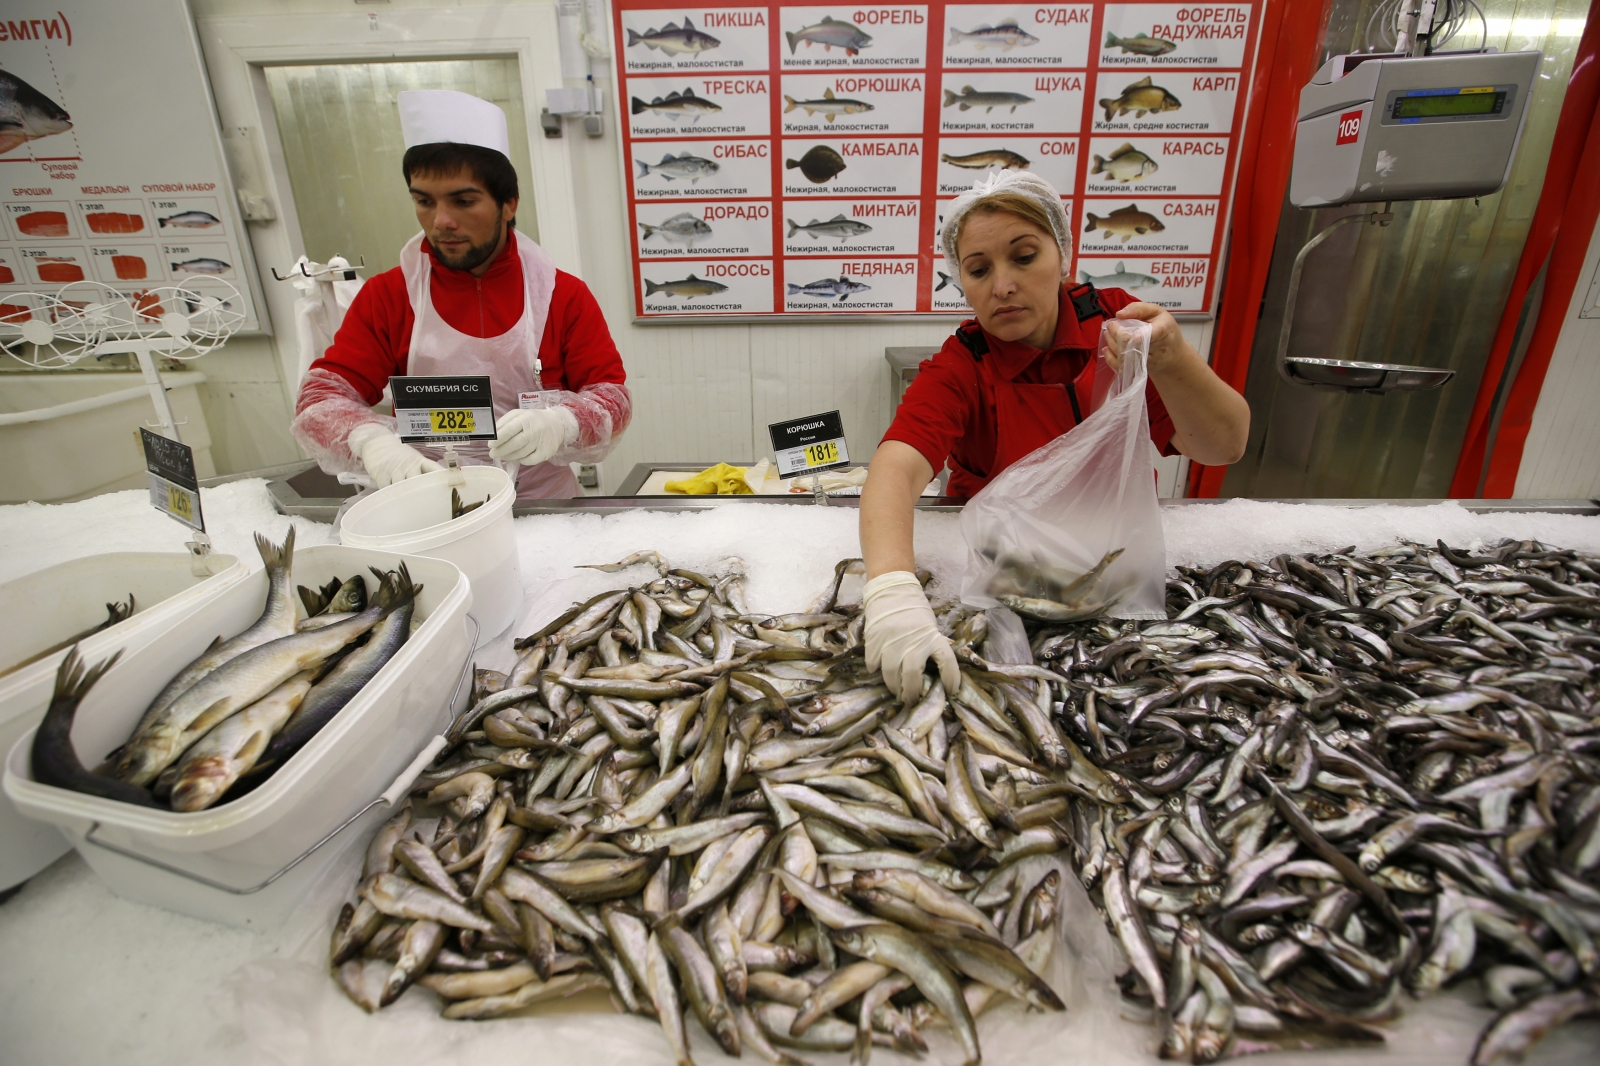 Employees work at the seafood department of an Auchan grocery store in Moscow, August 18, 2014.